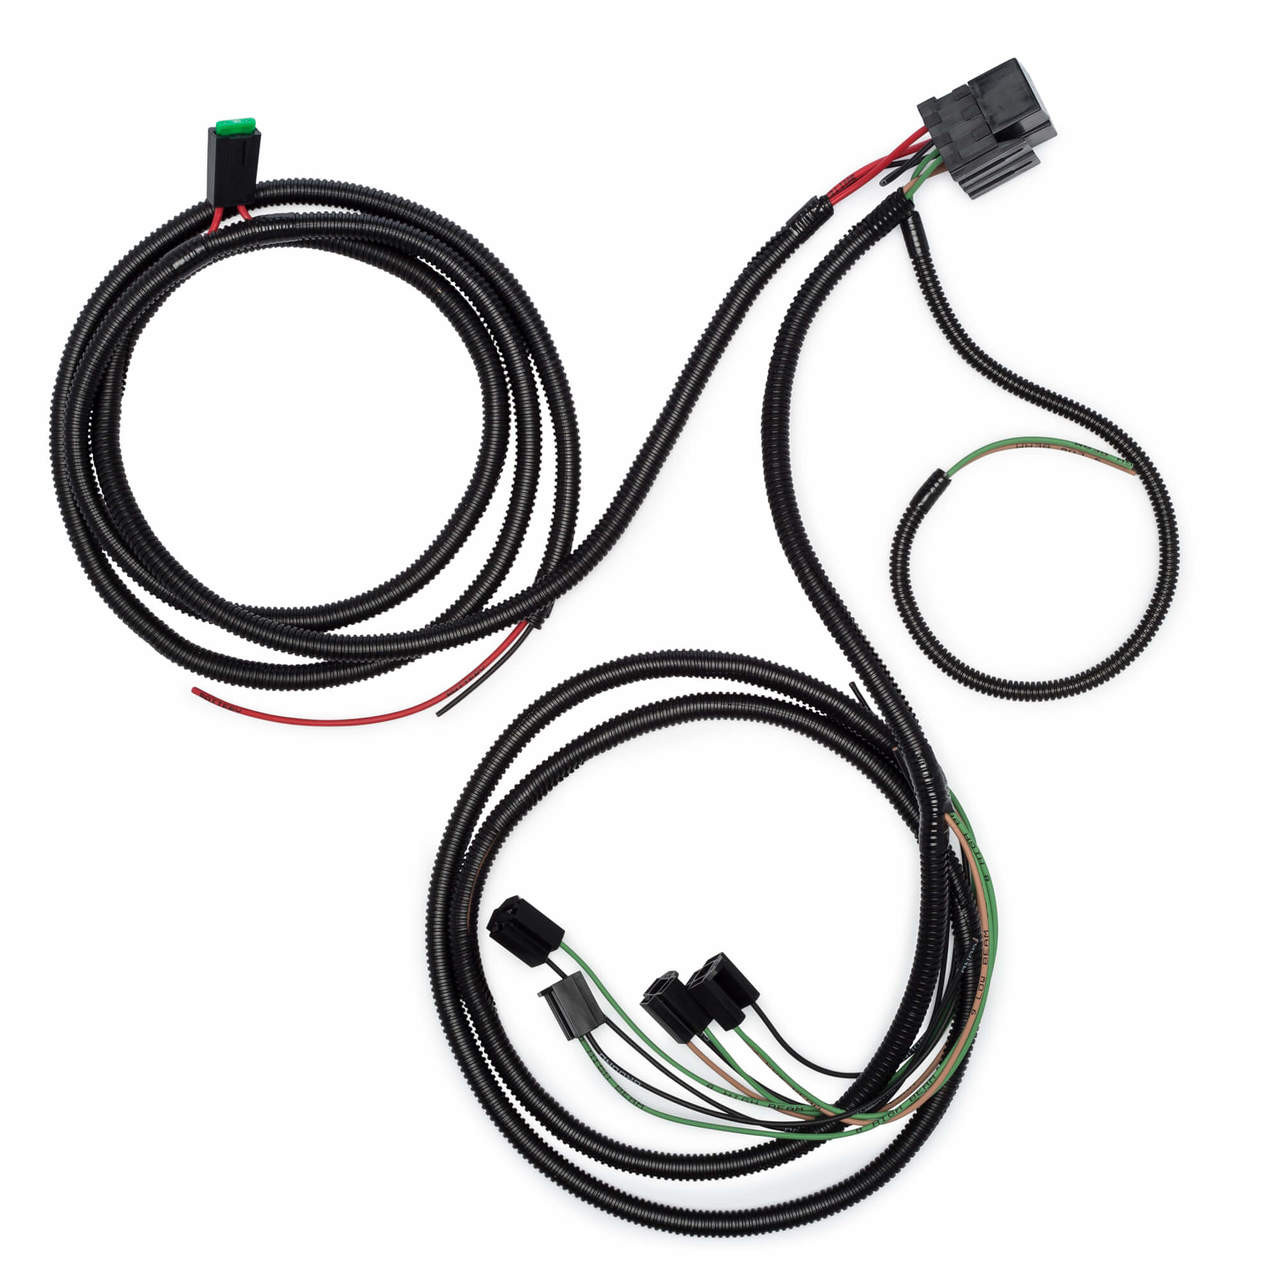 Superb Halogen Headlight Relay Kit 2 Lights Kwikwire Com Electrify Wiring Digital Resources Indicompassionincorg